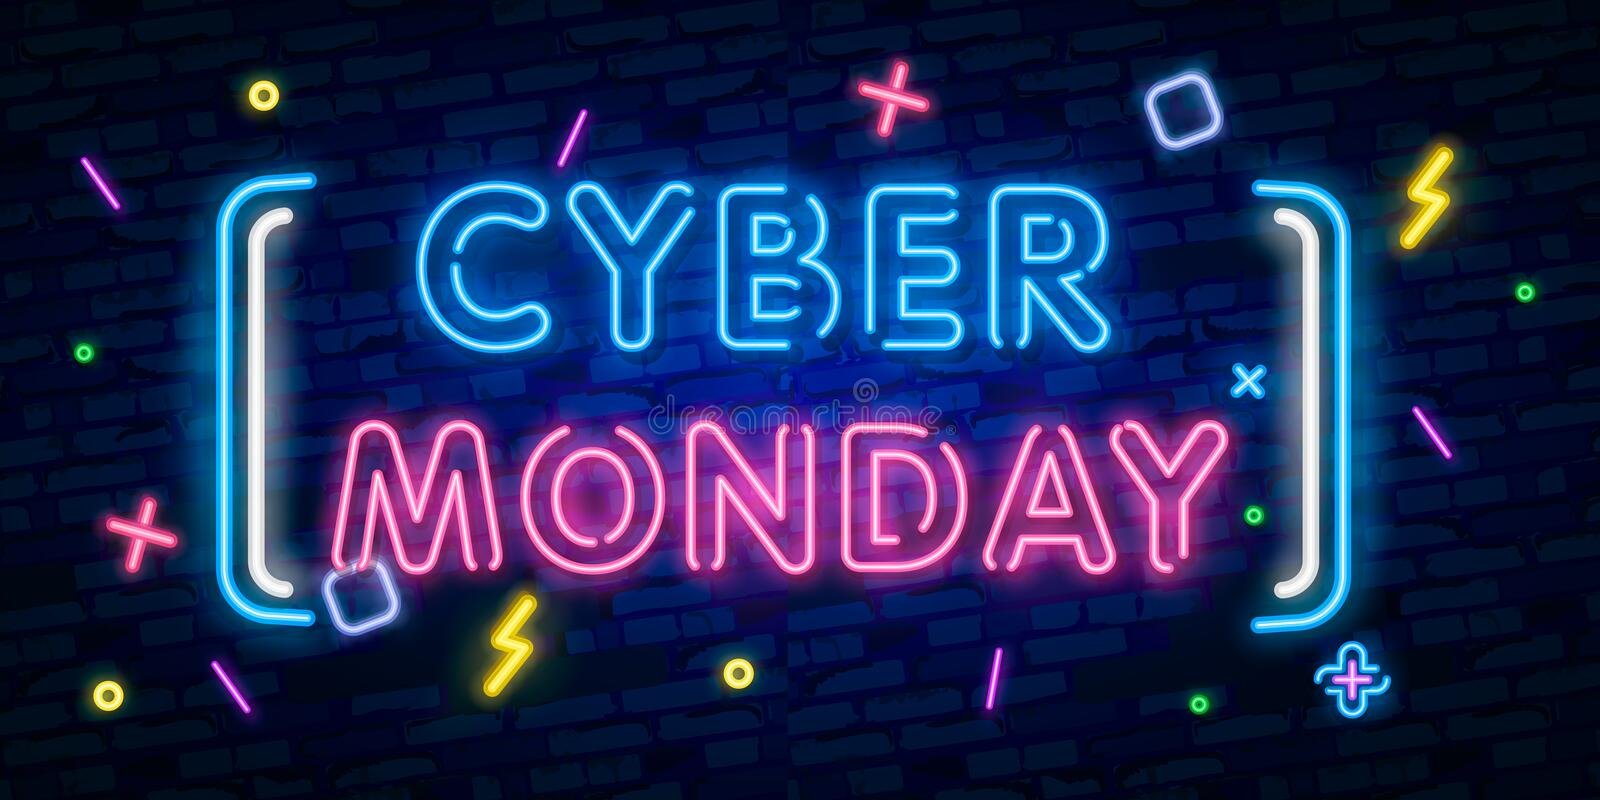 Cyber Monday, discount sale concept illustration in neon style, online shopping and marketing concept, vector illustration. Neon l. Cyber Monday, discount sale vector illustration